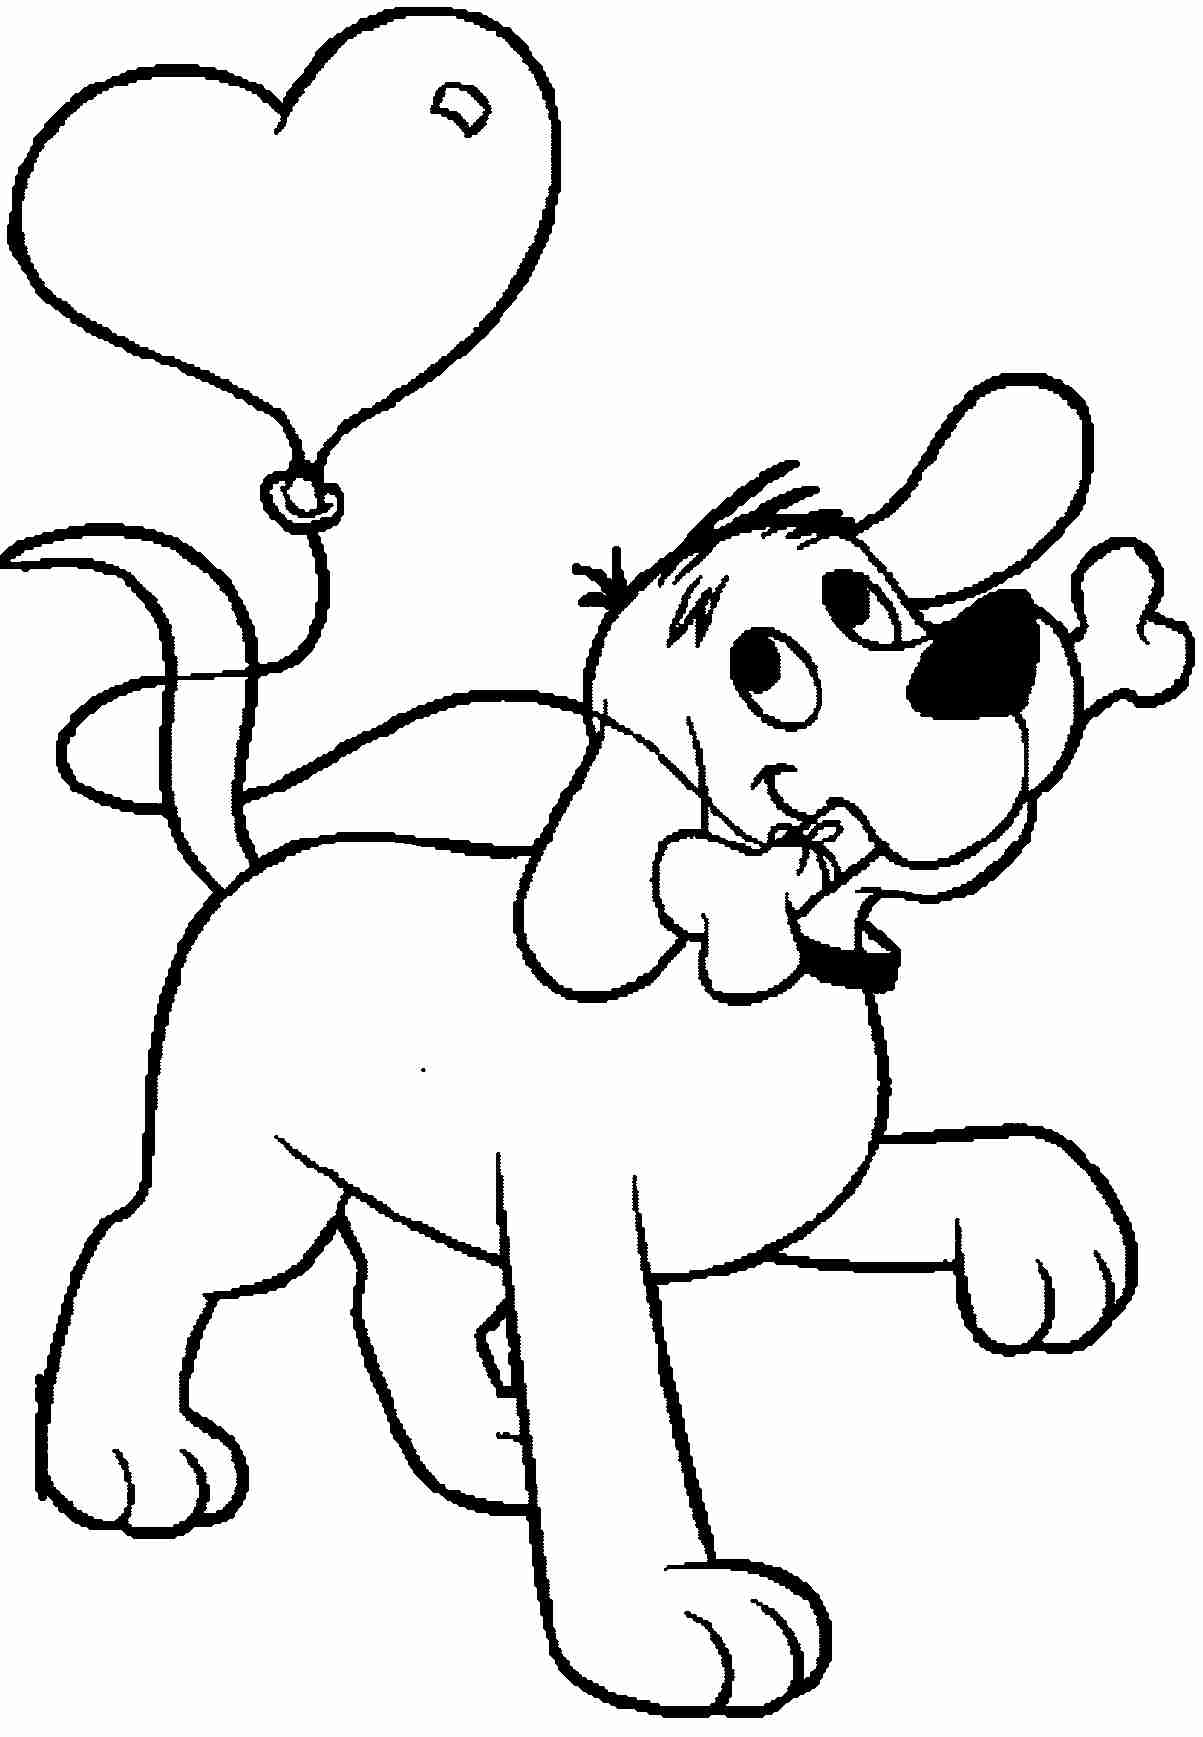 1203x1737 Clifford The Big Red Dog Coloring Pages Printable Page Fine